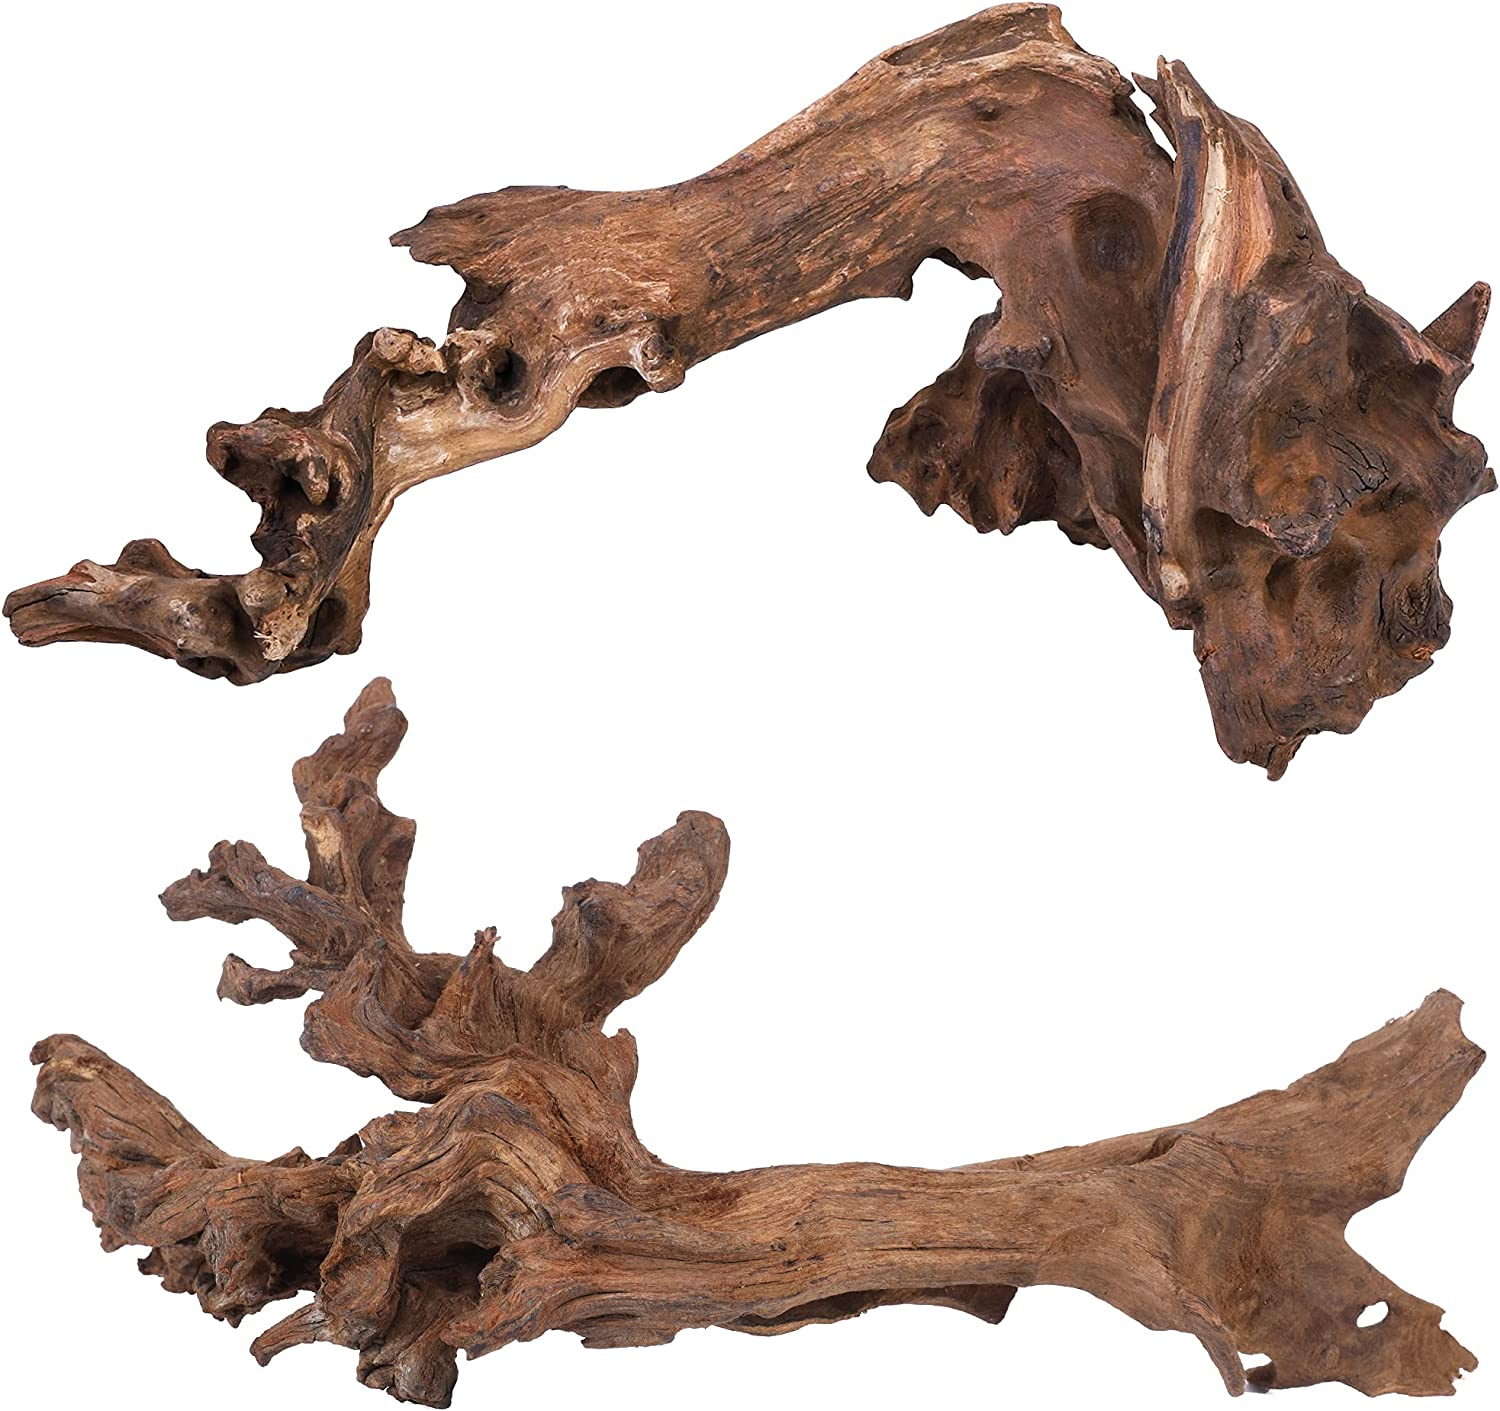 majoywoo Natural Large Driftwood for Aquarium Decor Reptile Decor, Assorted Driftwood Branch 9-14